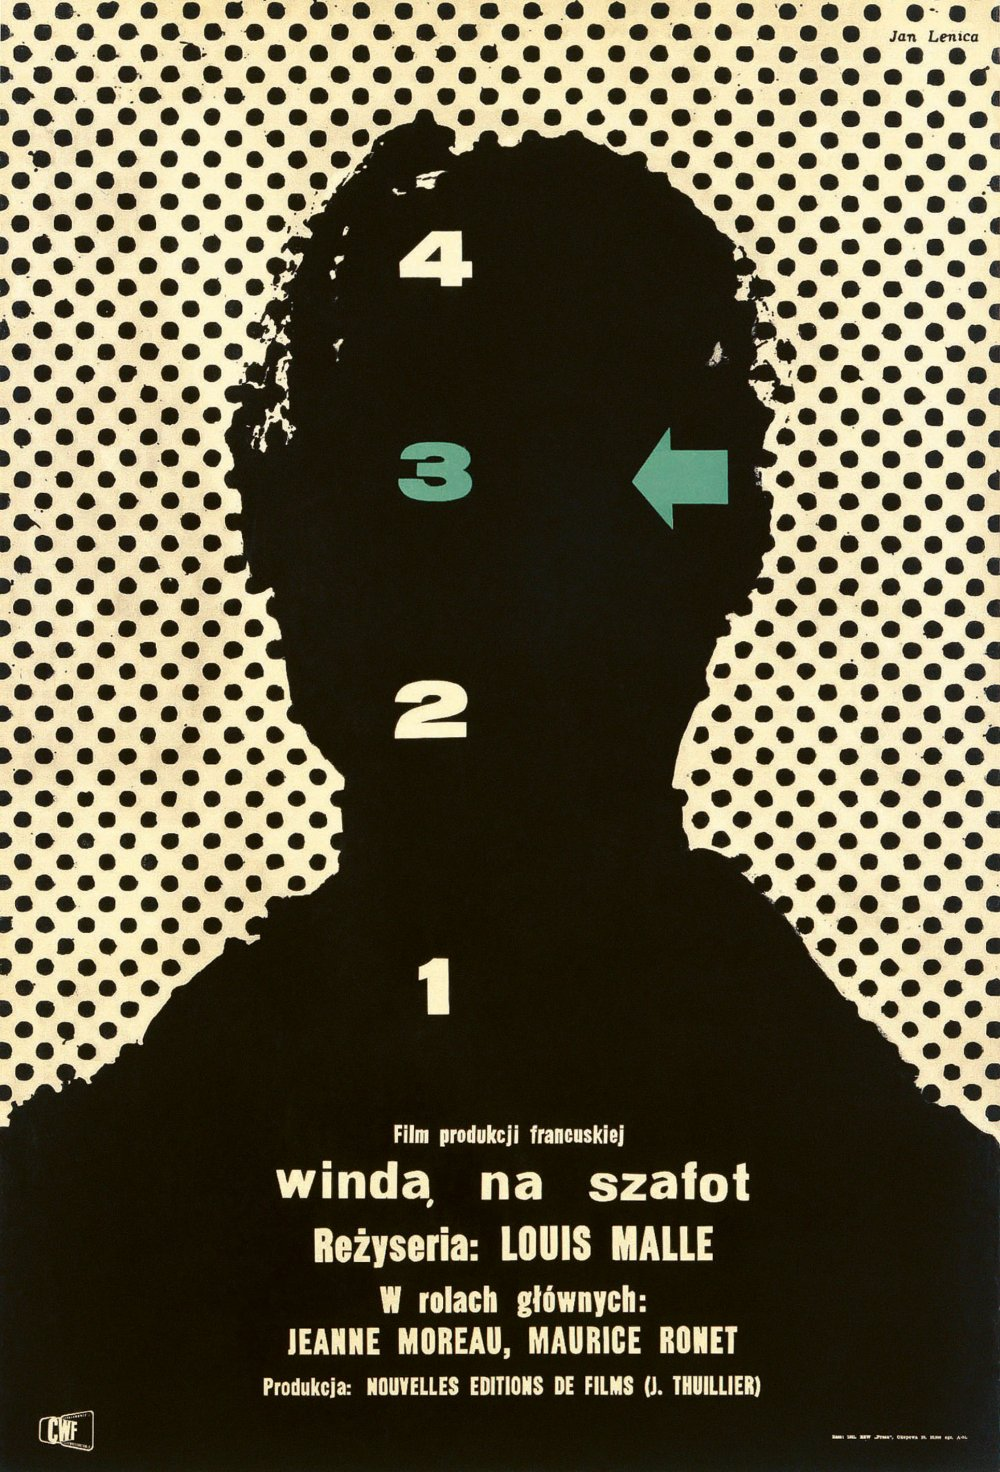 <strong>Lift to the Scaffold (1958) poster. Jan Lenica, Poland. </strong>Jan Lenica's poster for Lift to the Scaffold – known in Poland as Winda na Szafot – shows a stark silhouette against a dotted background. But who is it? 'It could be Jeanne Moreau or another character,' says Nourmand, 'and those numbers down the middle refer, of course, to the numbers of the lift. The character gets stuck on the third floor.' In some cases, designers would have seen the film and been invited to respond to it visually. 'In other cases they were just given a press kit with stills and assets that they could use. They would have a synopsis, details of who was in it, stills from the movie.'